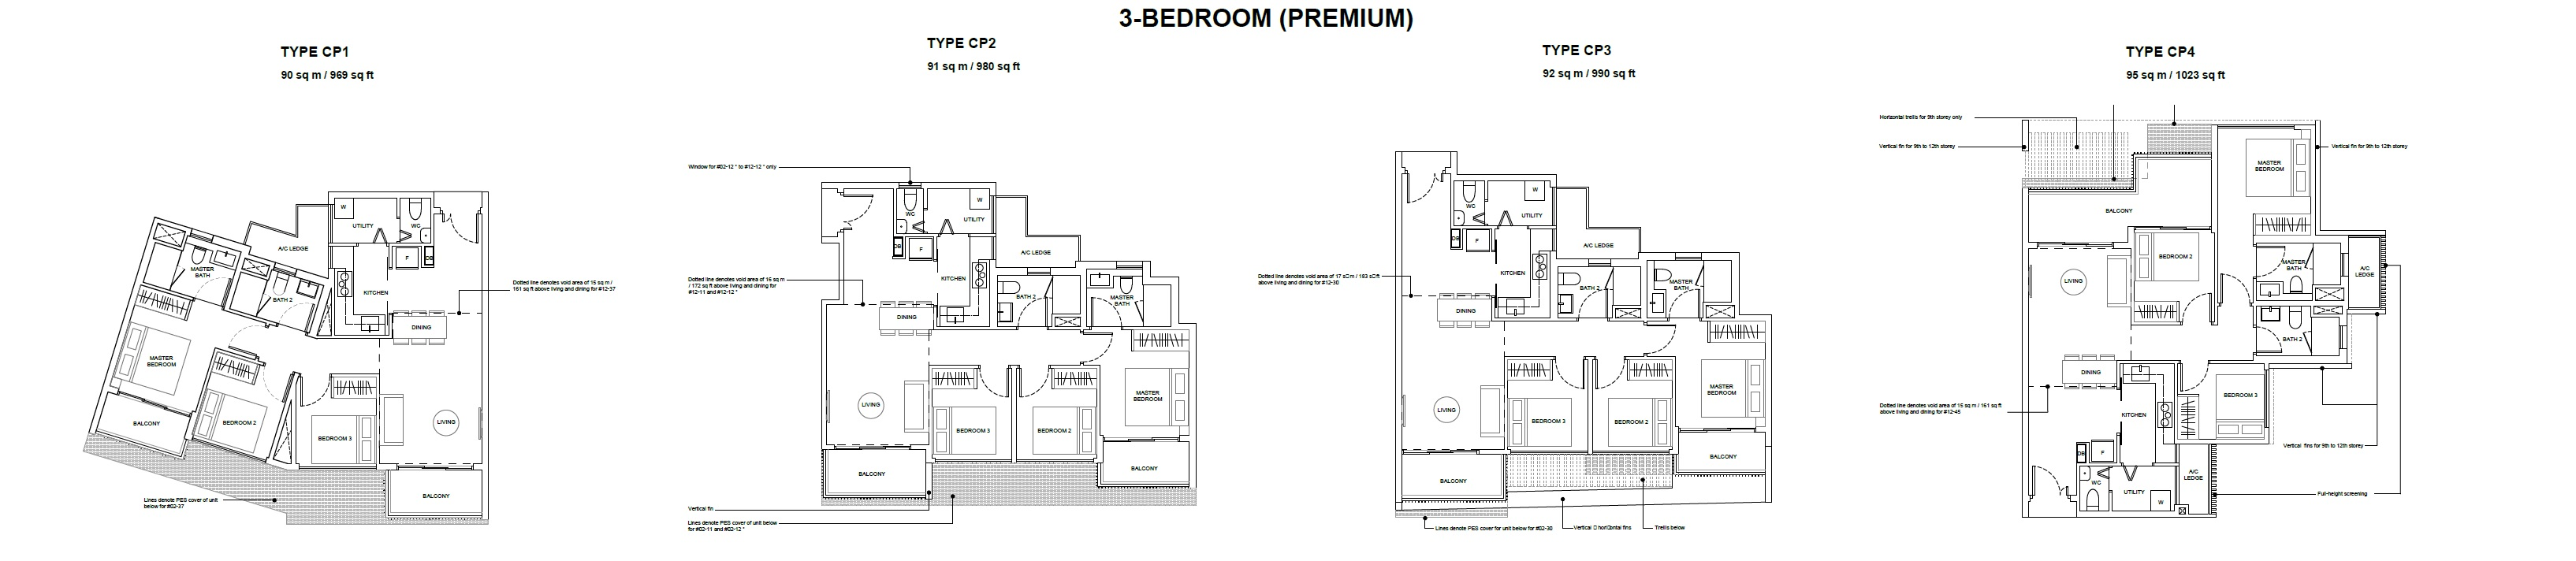 forest-woods-floor-plan-for-three-bedroom-premium